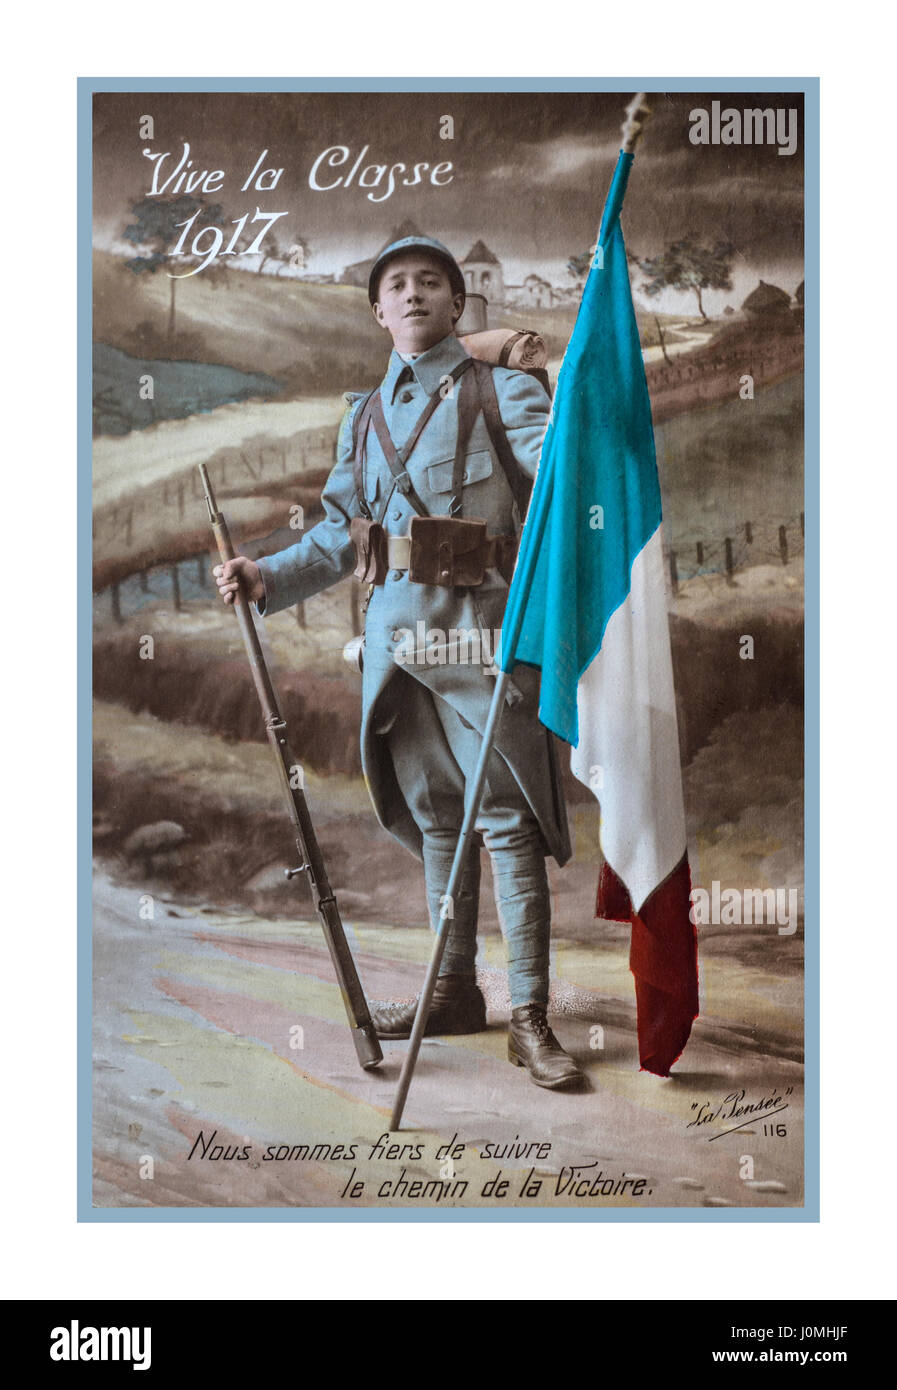 WW1 1914-1918 propaganda postcard with French infantry soldier holding tricolor flag dated 1917 from the battlefront - Stock Image